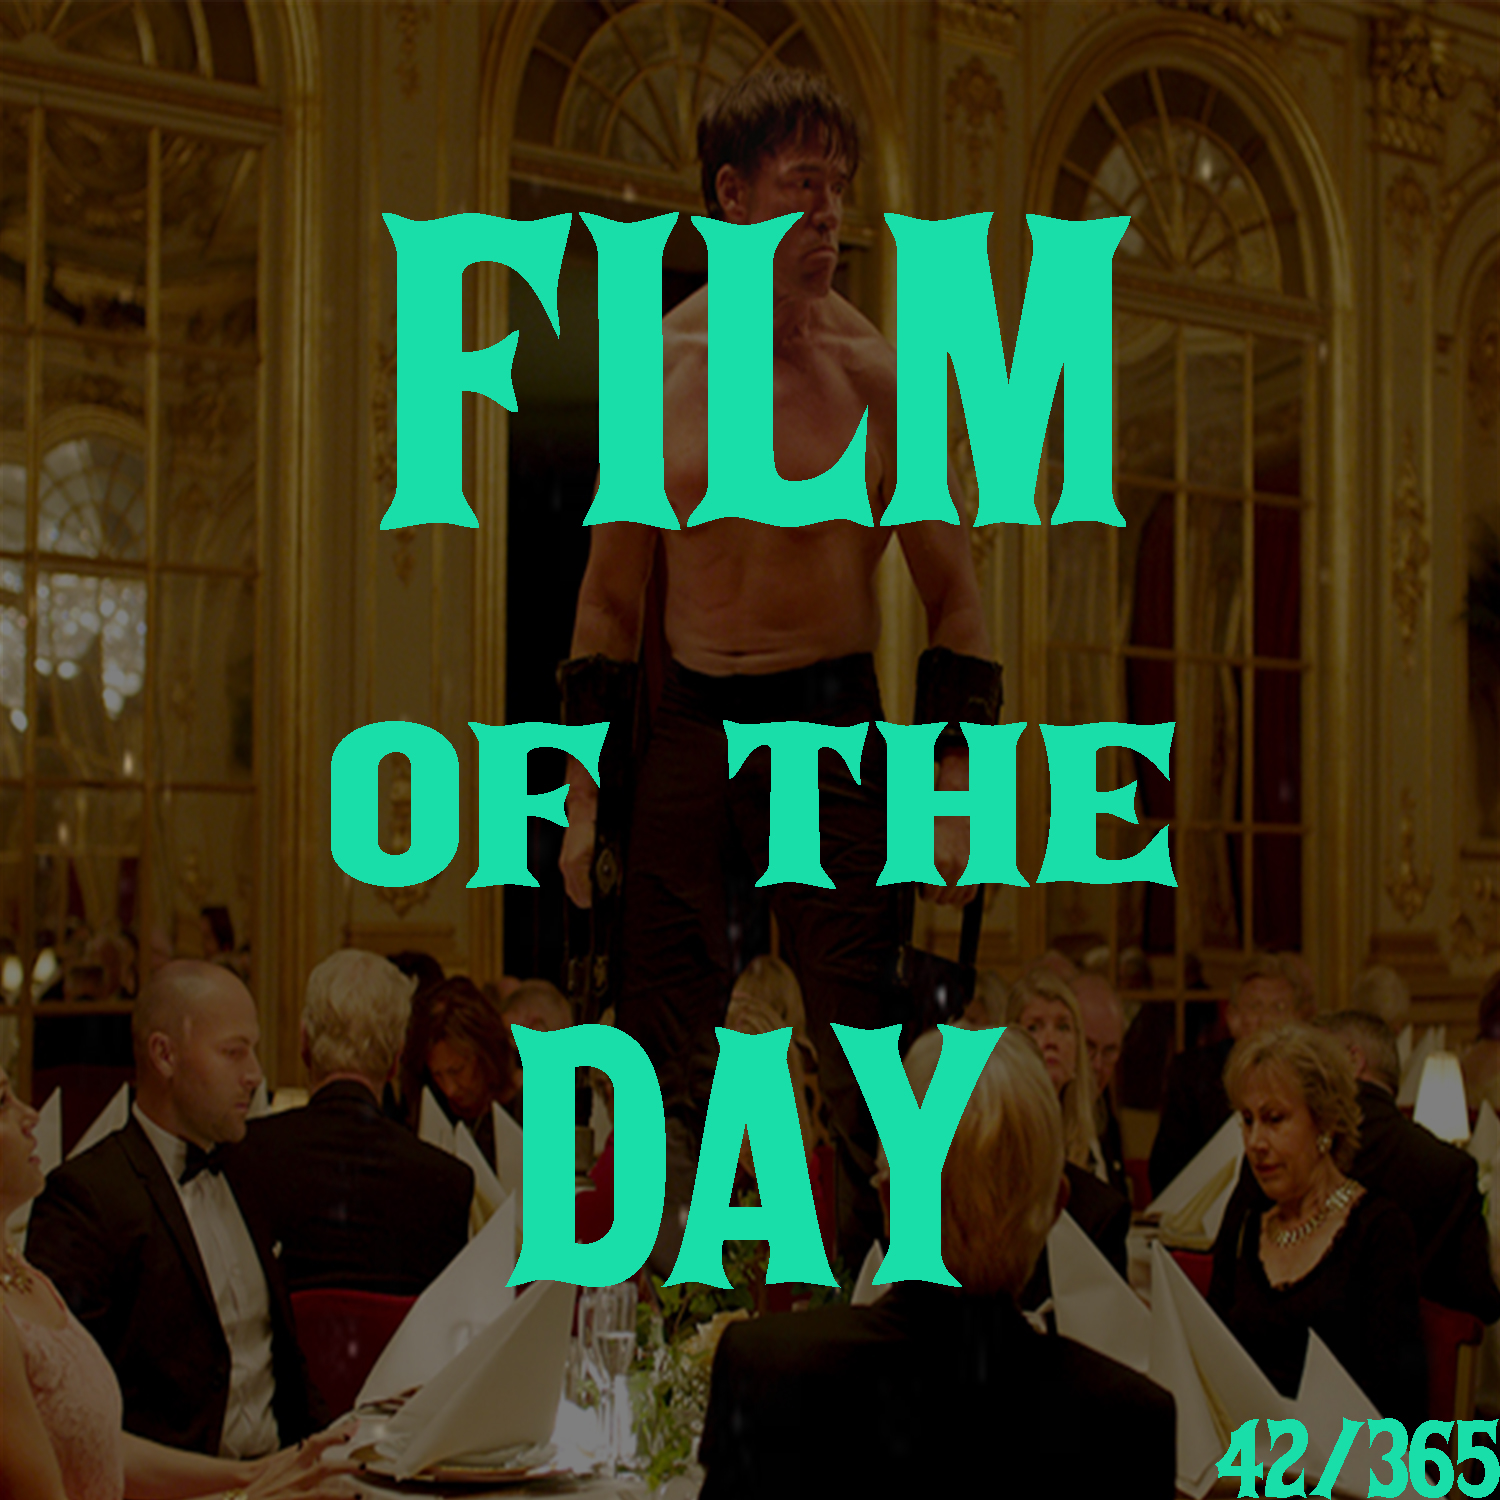 The Square     (Ruben Östlund)   Claes Bang plays Christian, a well-respected museum curator whose life starts to slowly fall to shambles after his wallet and phone get stolen. At the same time, he has a marketing team made up of millennials who post a controversial ad campaign without his approval, that sets off all the SJW's and threatens Christian's career.  The Square  won the Palme d'or at Cannes and while I honestly feel like I didn't step away with much after the 2 and a half hours, I still find myself completely obsessed with these characters and this world that Swedish director Ruben Östlund has created… Also, the ape-man scene with Terry Notary might be one of the greatest scenes of the decade.